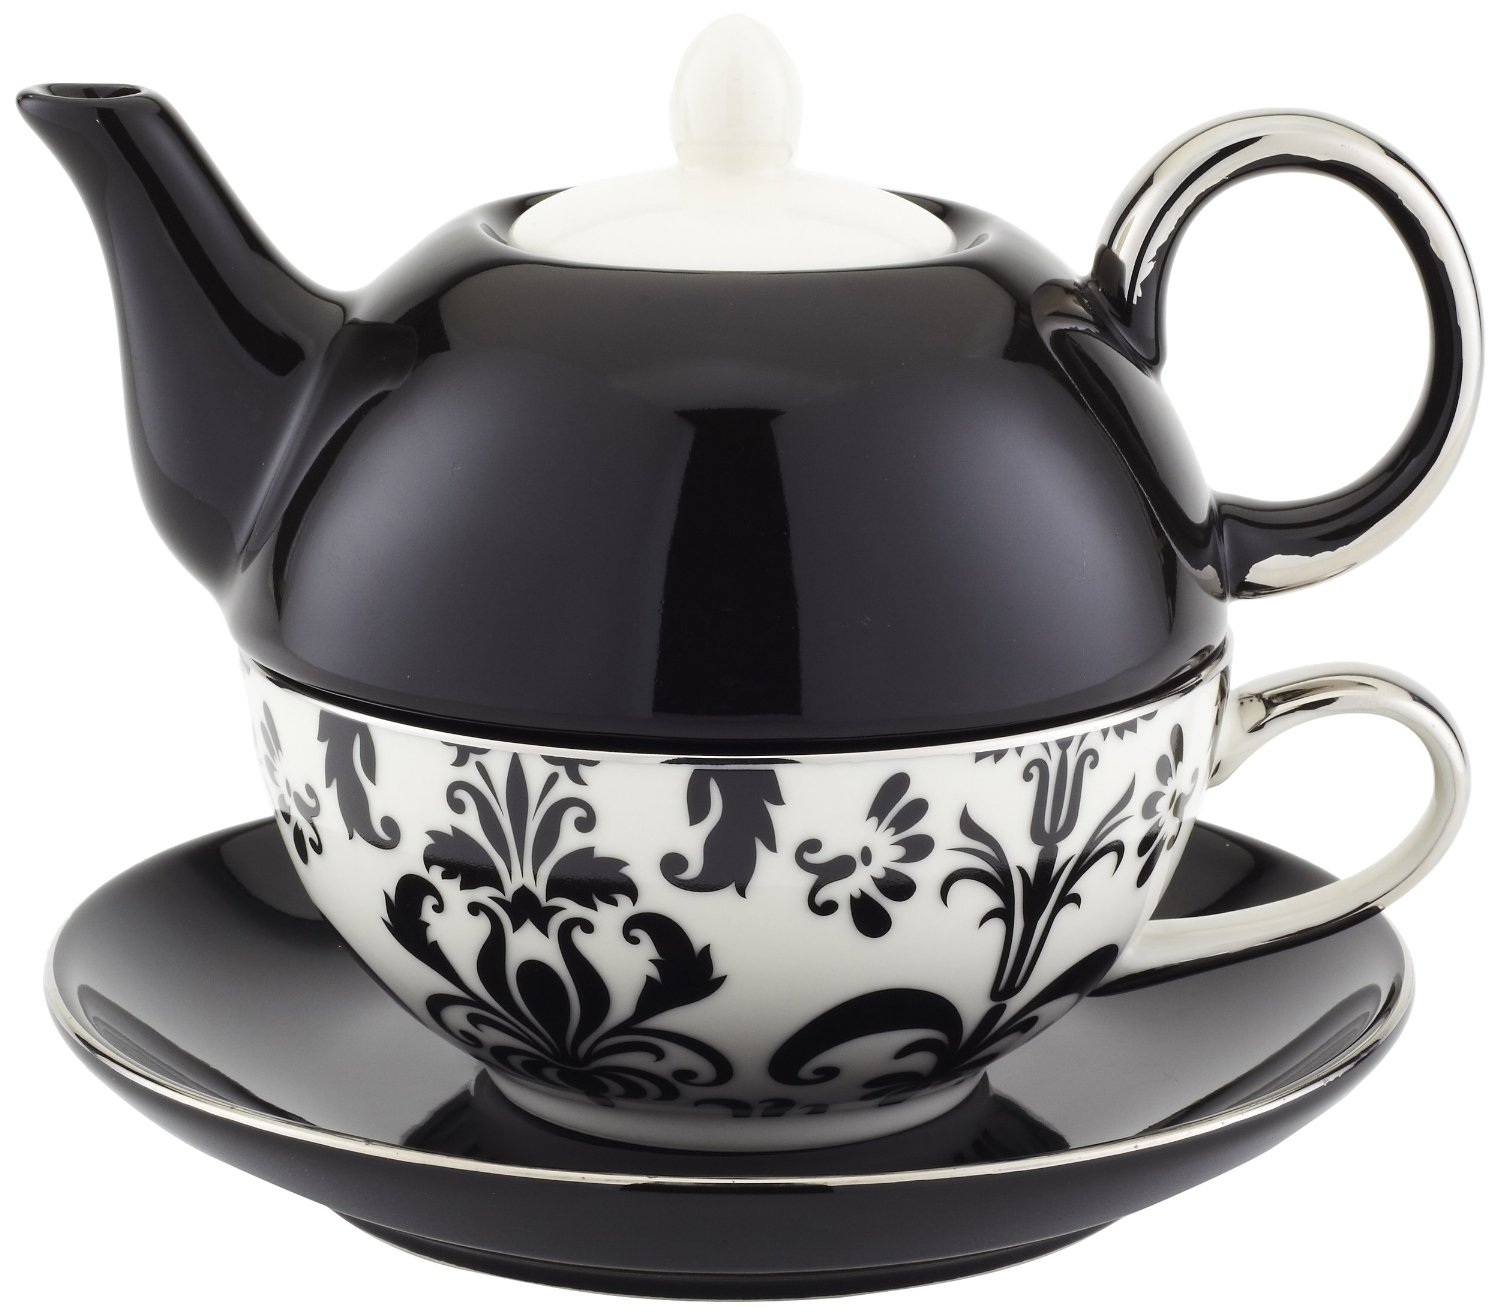 Classic Coffee & Tea Chic Tea Set for One  in Black & White Damask Design